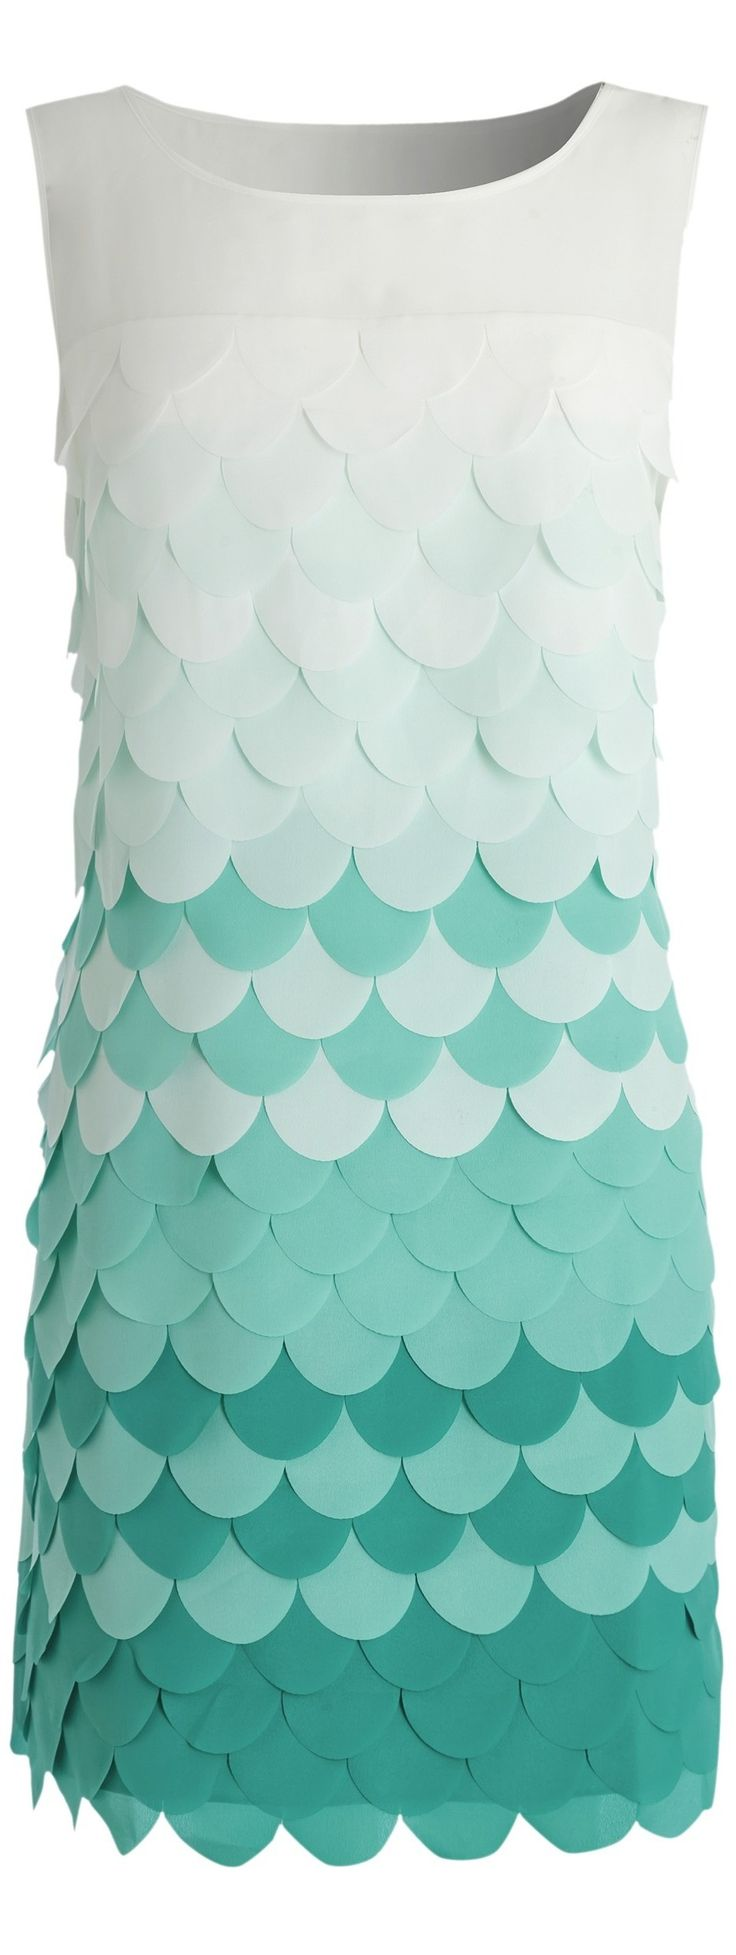 Pantone Lucite Green dress - more - http://www.boomerinas.com/2015/01/02/pantone-colors-for-spring-summer-2015-fashion-for-women/